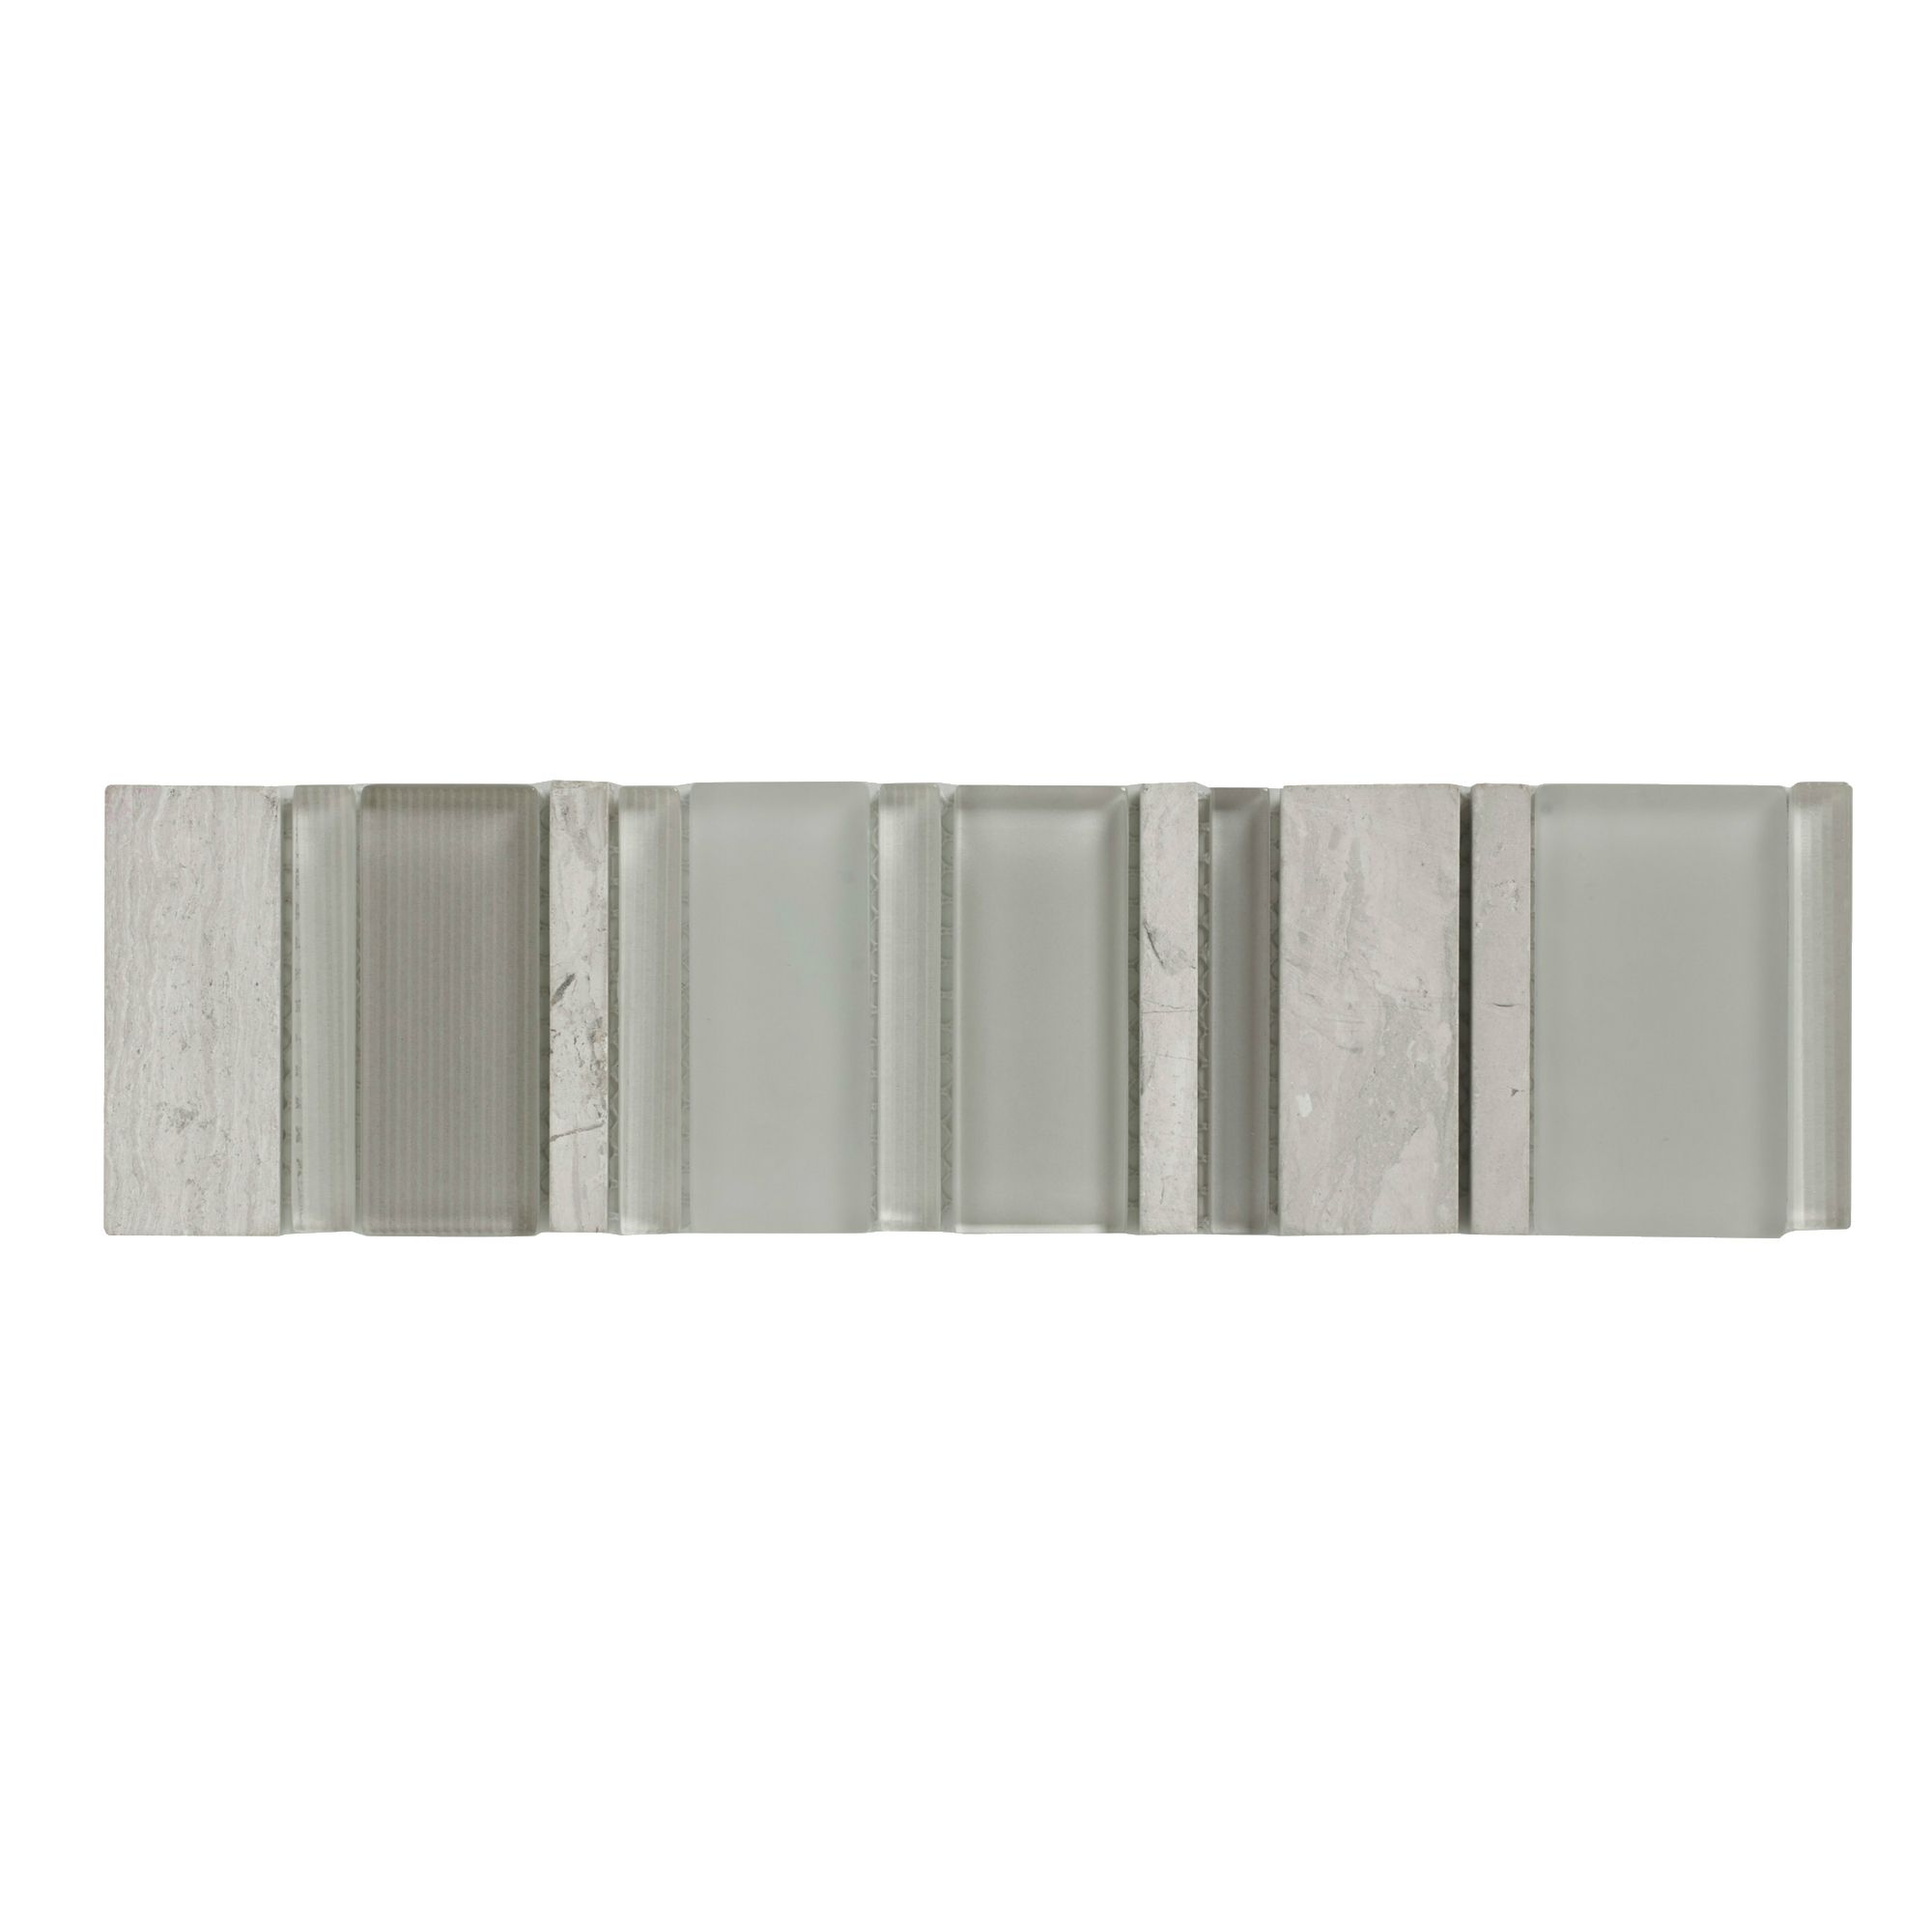 Fossilised Wood Pebble Stone Effect Glass, Stone & Metal Border Tile, (l)300mm (w)75mm